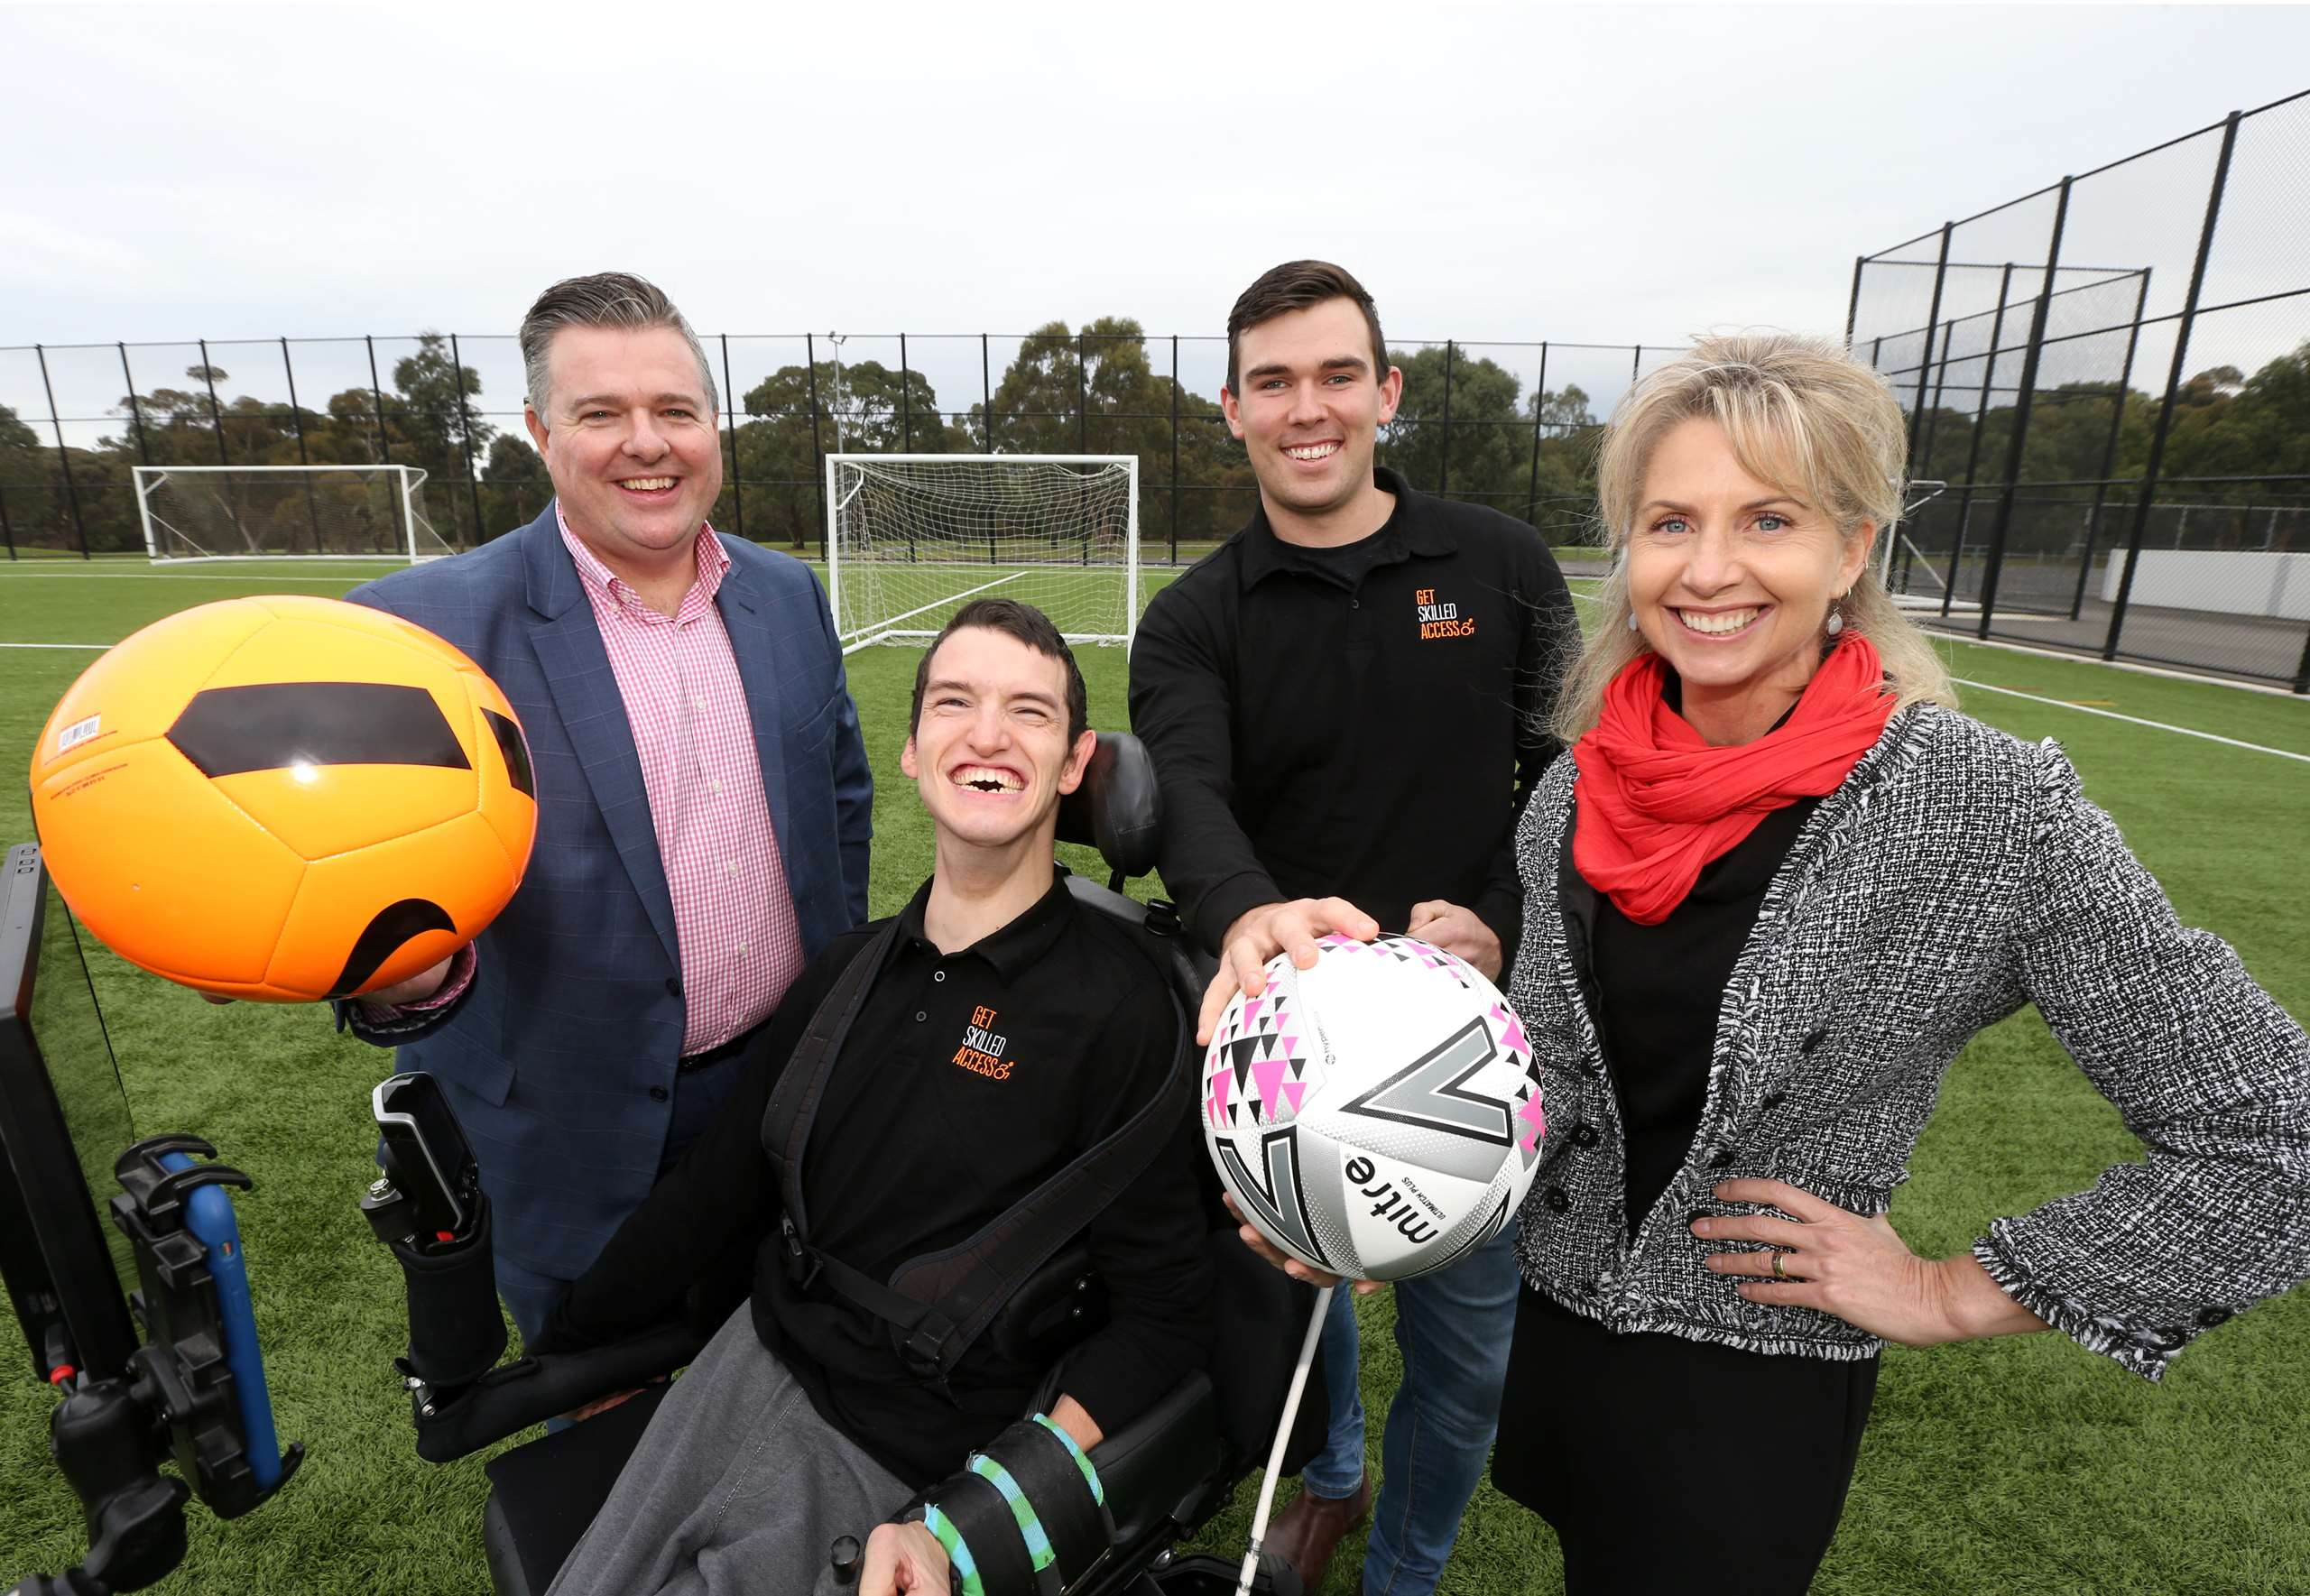 (L-R): Cr Anthony Aitken, Noah Callan (Get Skilled Access Associate), Ben Pettingill (Sport4All Project Coordinator at Get Skilled Access) and Greater Geelong Mayor Stephanie Asher